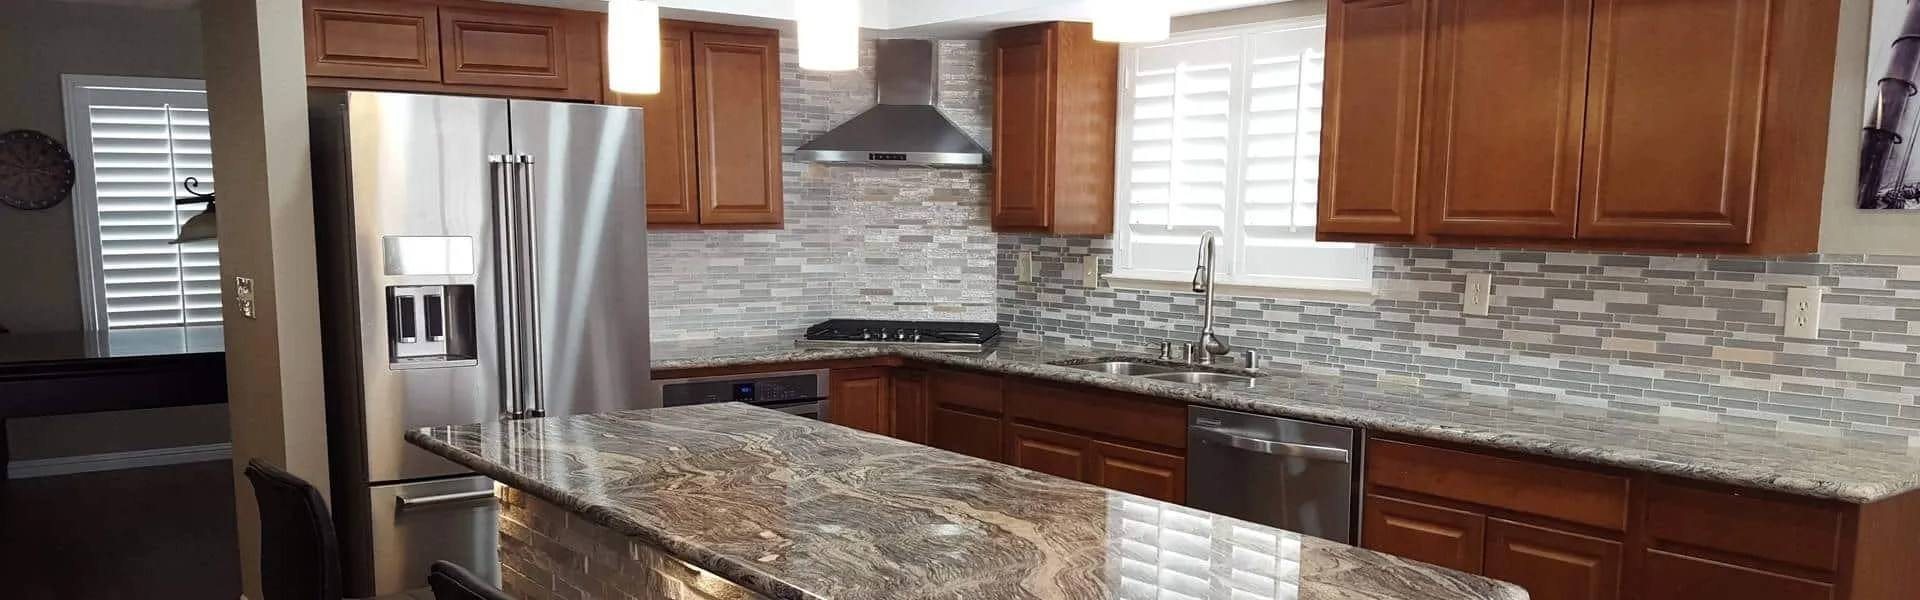 giclv kitchen remodel las vegas remodeling home improvement